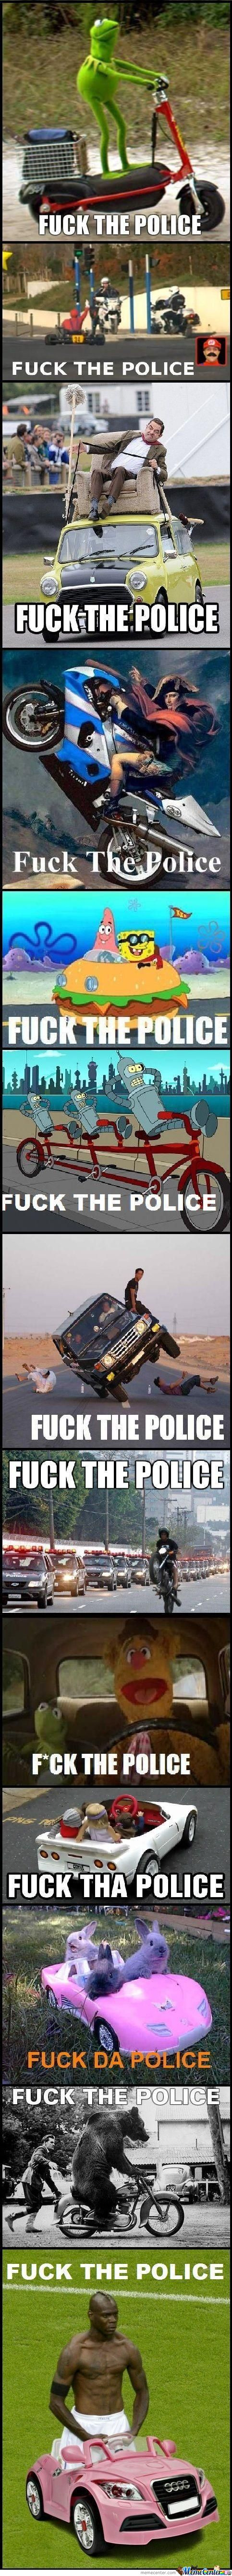 F*ck The Police Compilation